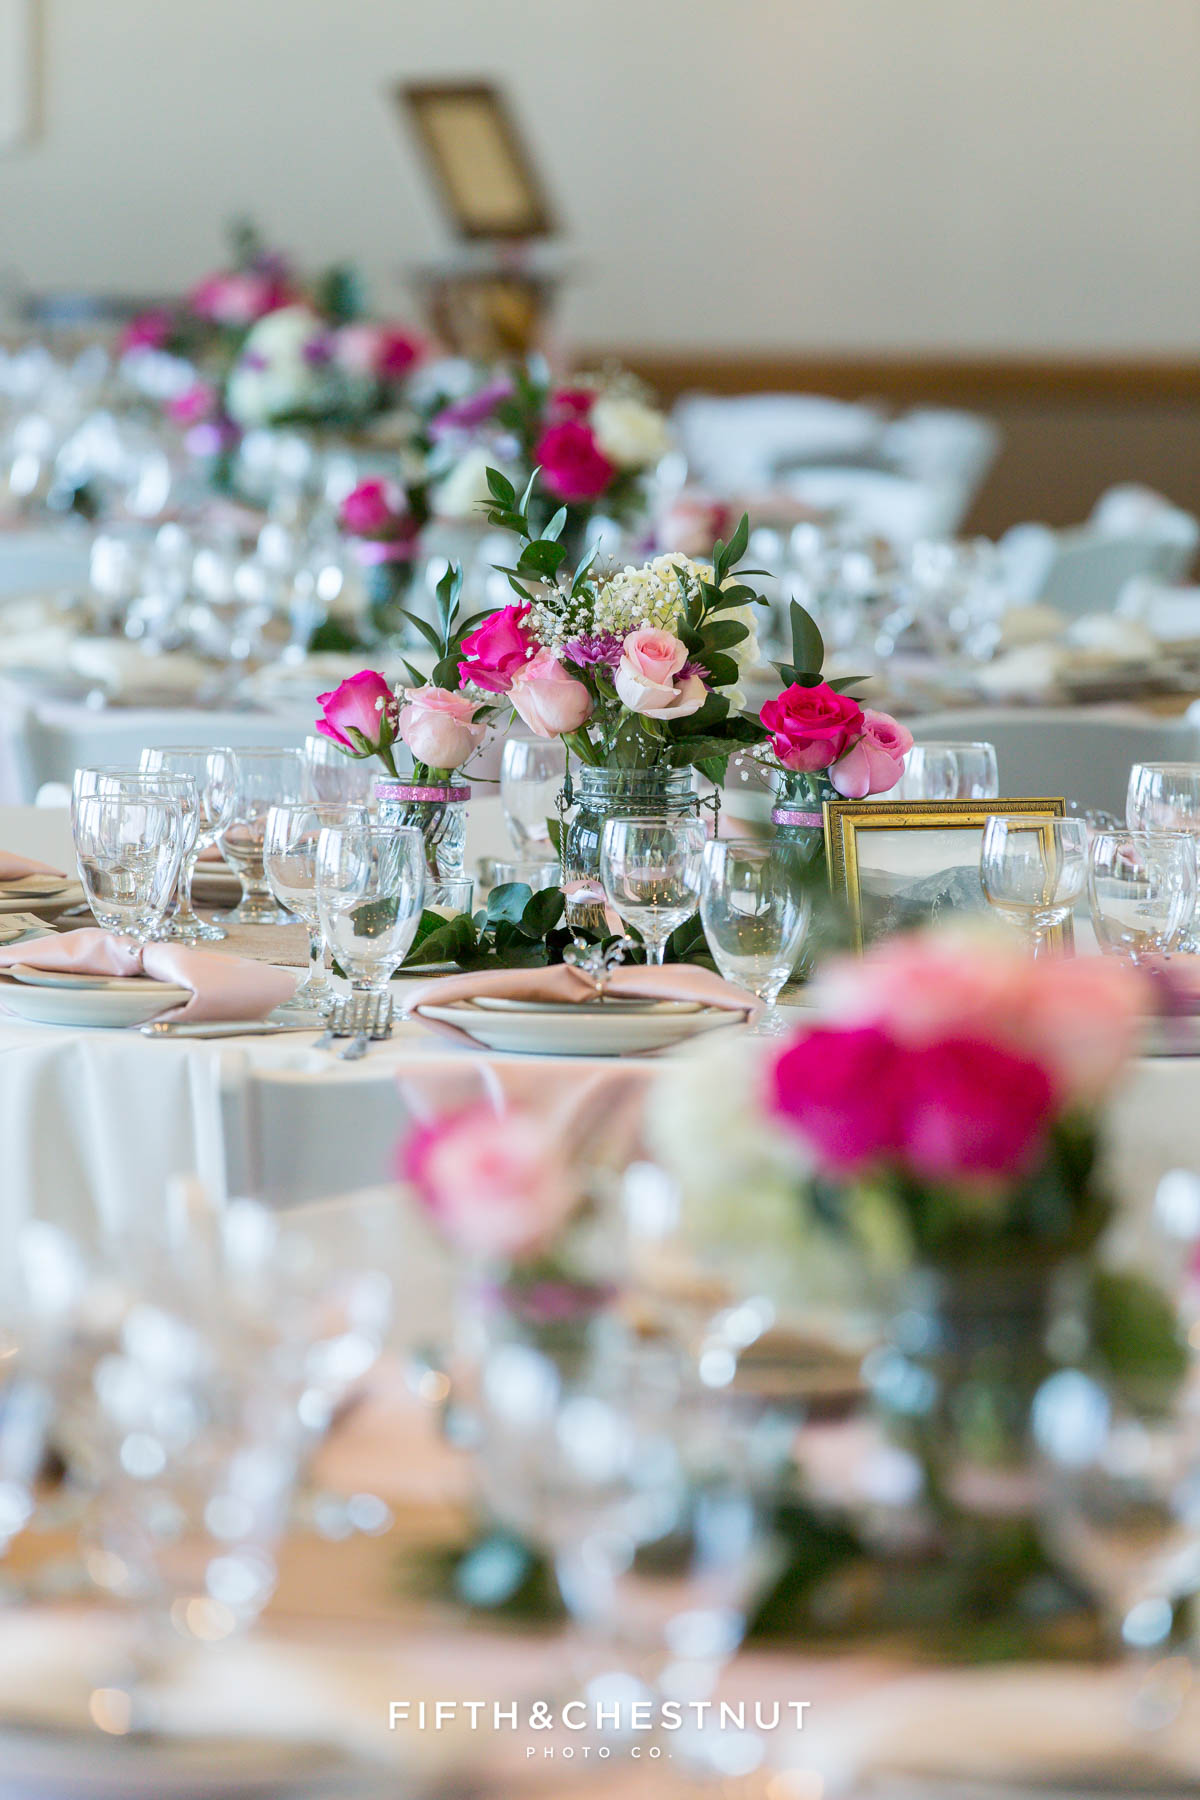 Wedding reception tables with vases of roses and place settings for a North Lake Tahoe Wedding